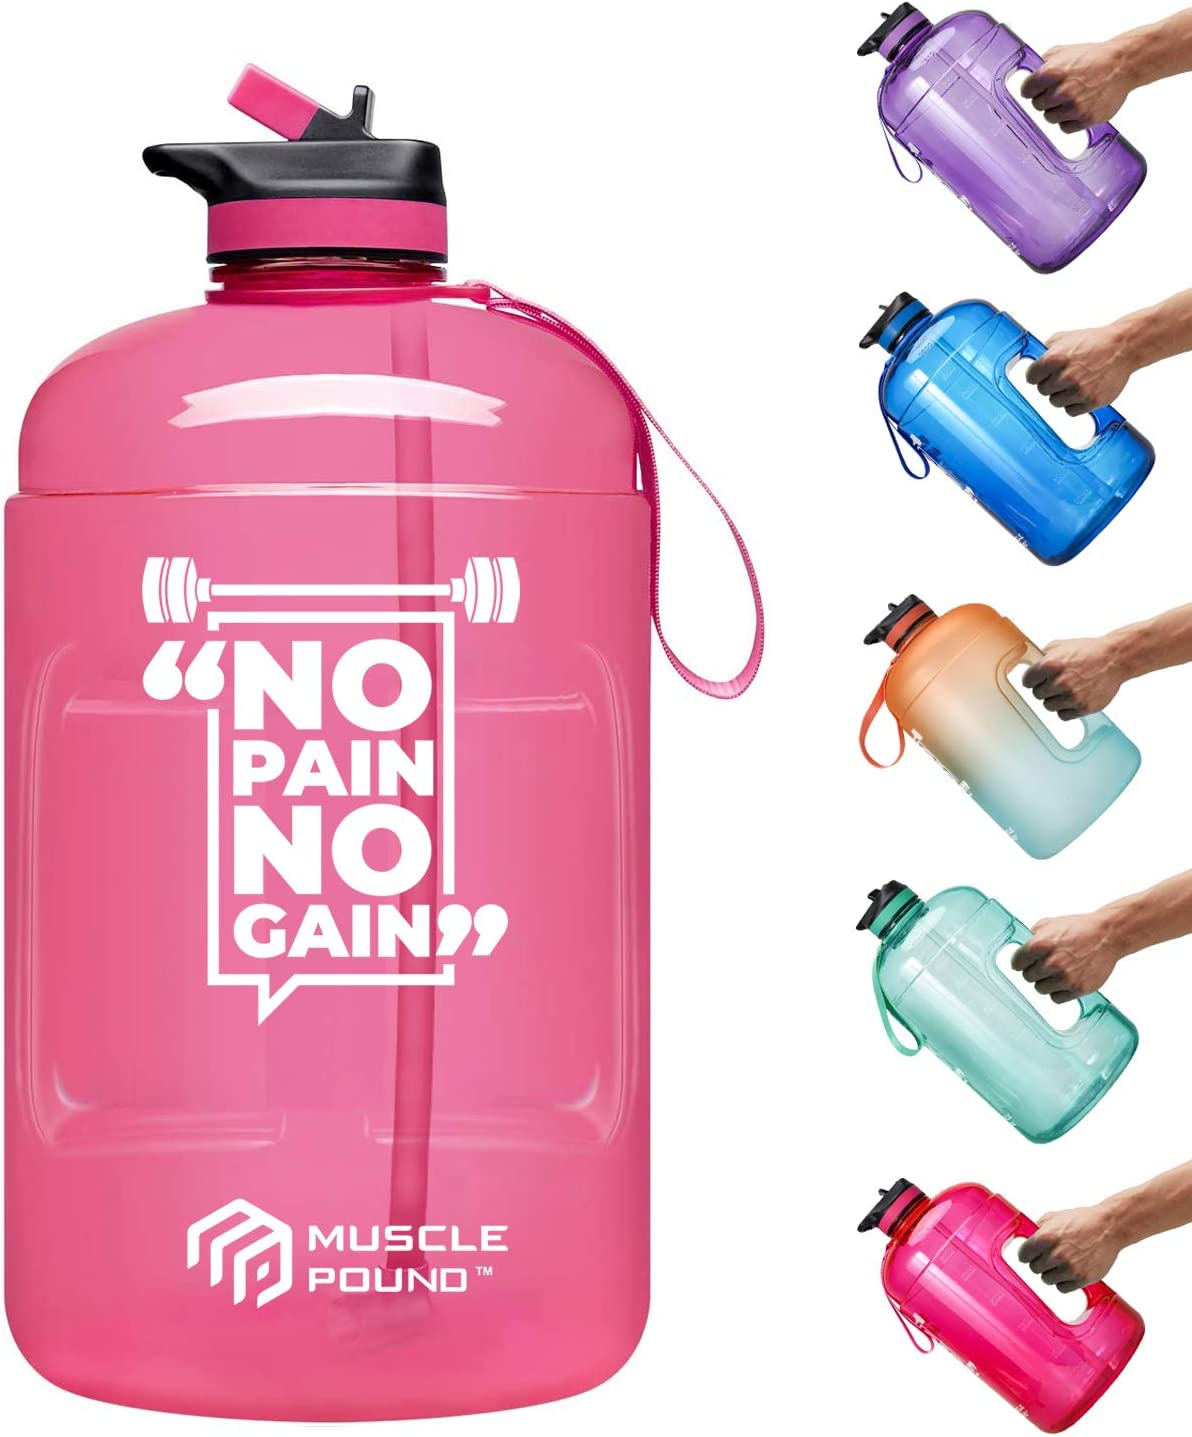 Blue, 128OZ Muscle Pound Gallon Water Bottle with Straw and Strap 128oz 1 Gallon Water Jug BPA Free Motivational Big Large Sports Water Bottle for Gym Fitness